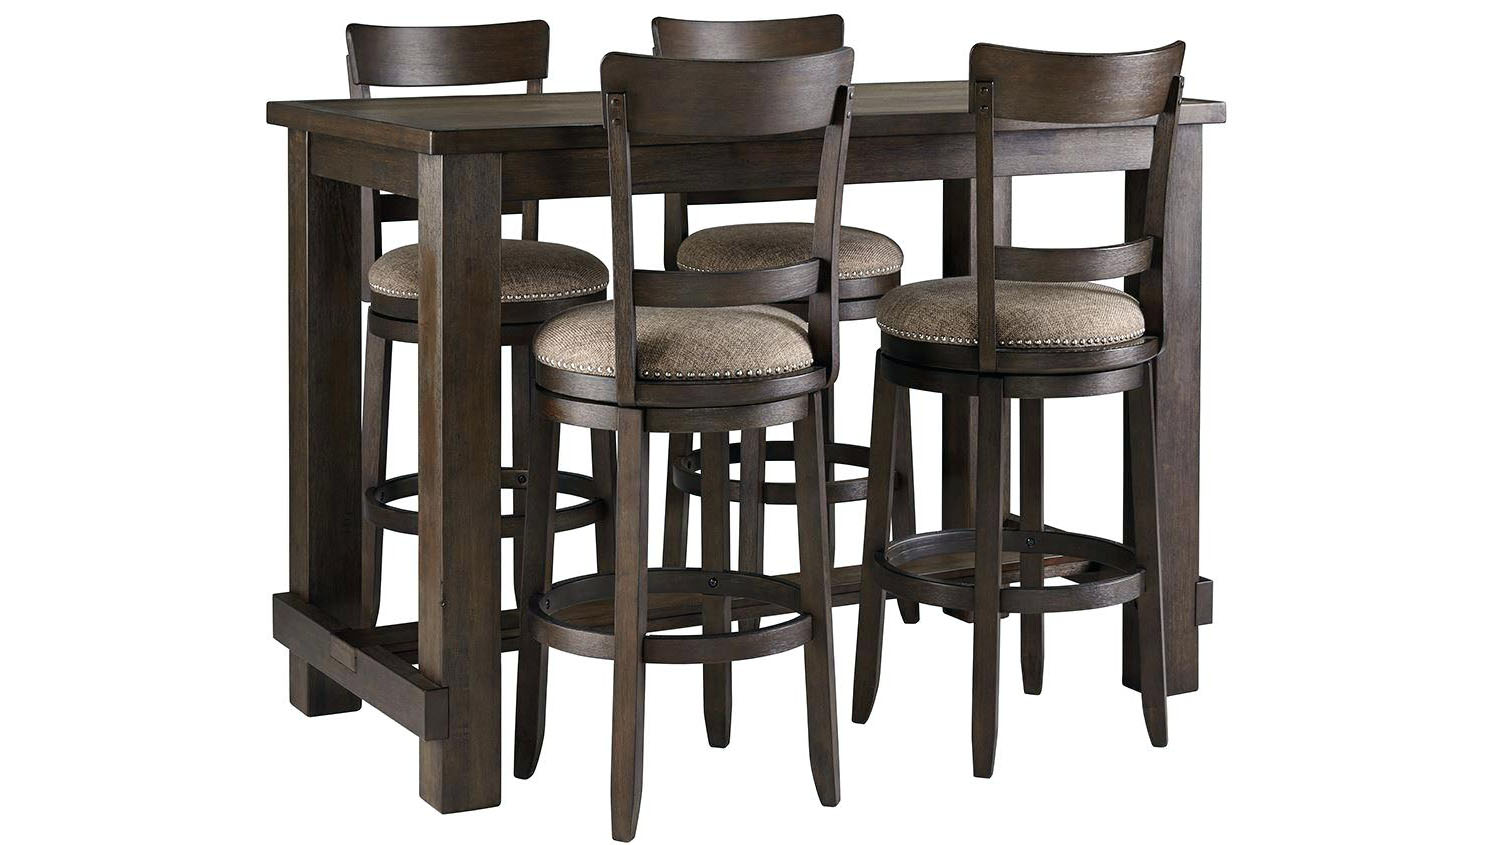 10 of Best Bar Table and Stools Sets for 2020